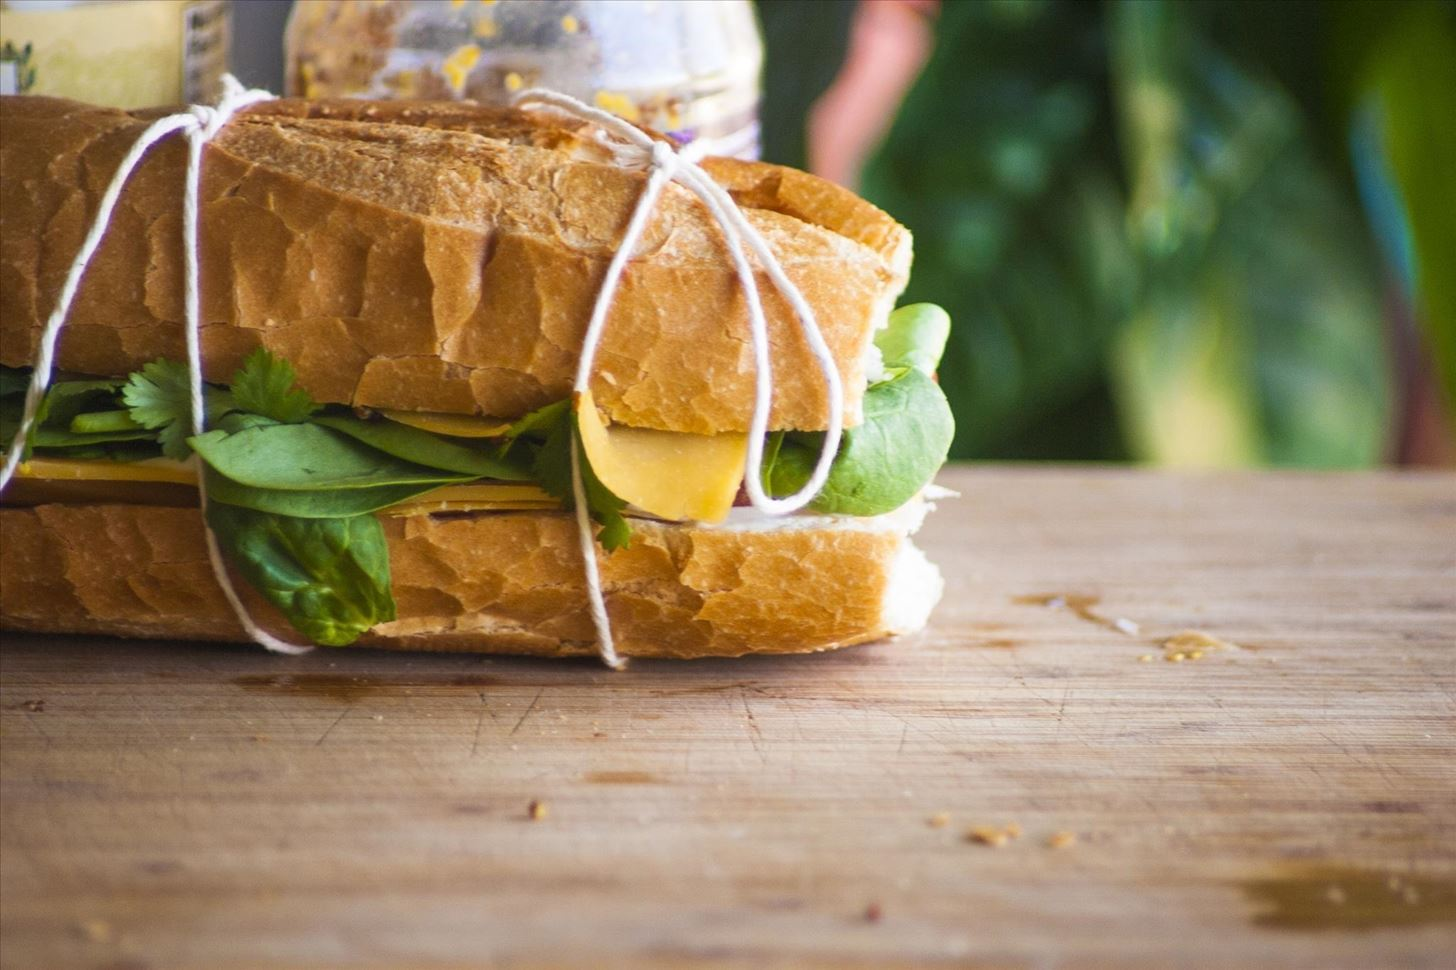 How to Keep Your Sandwiches from Getting Soggy